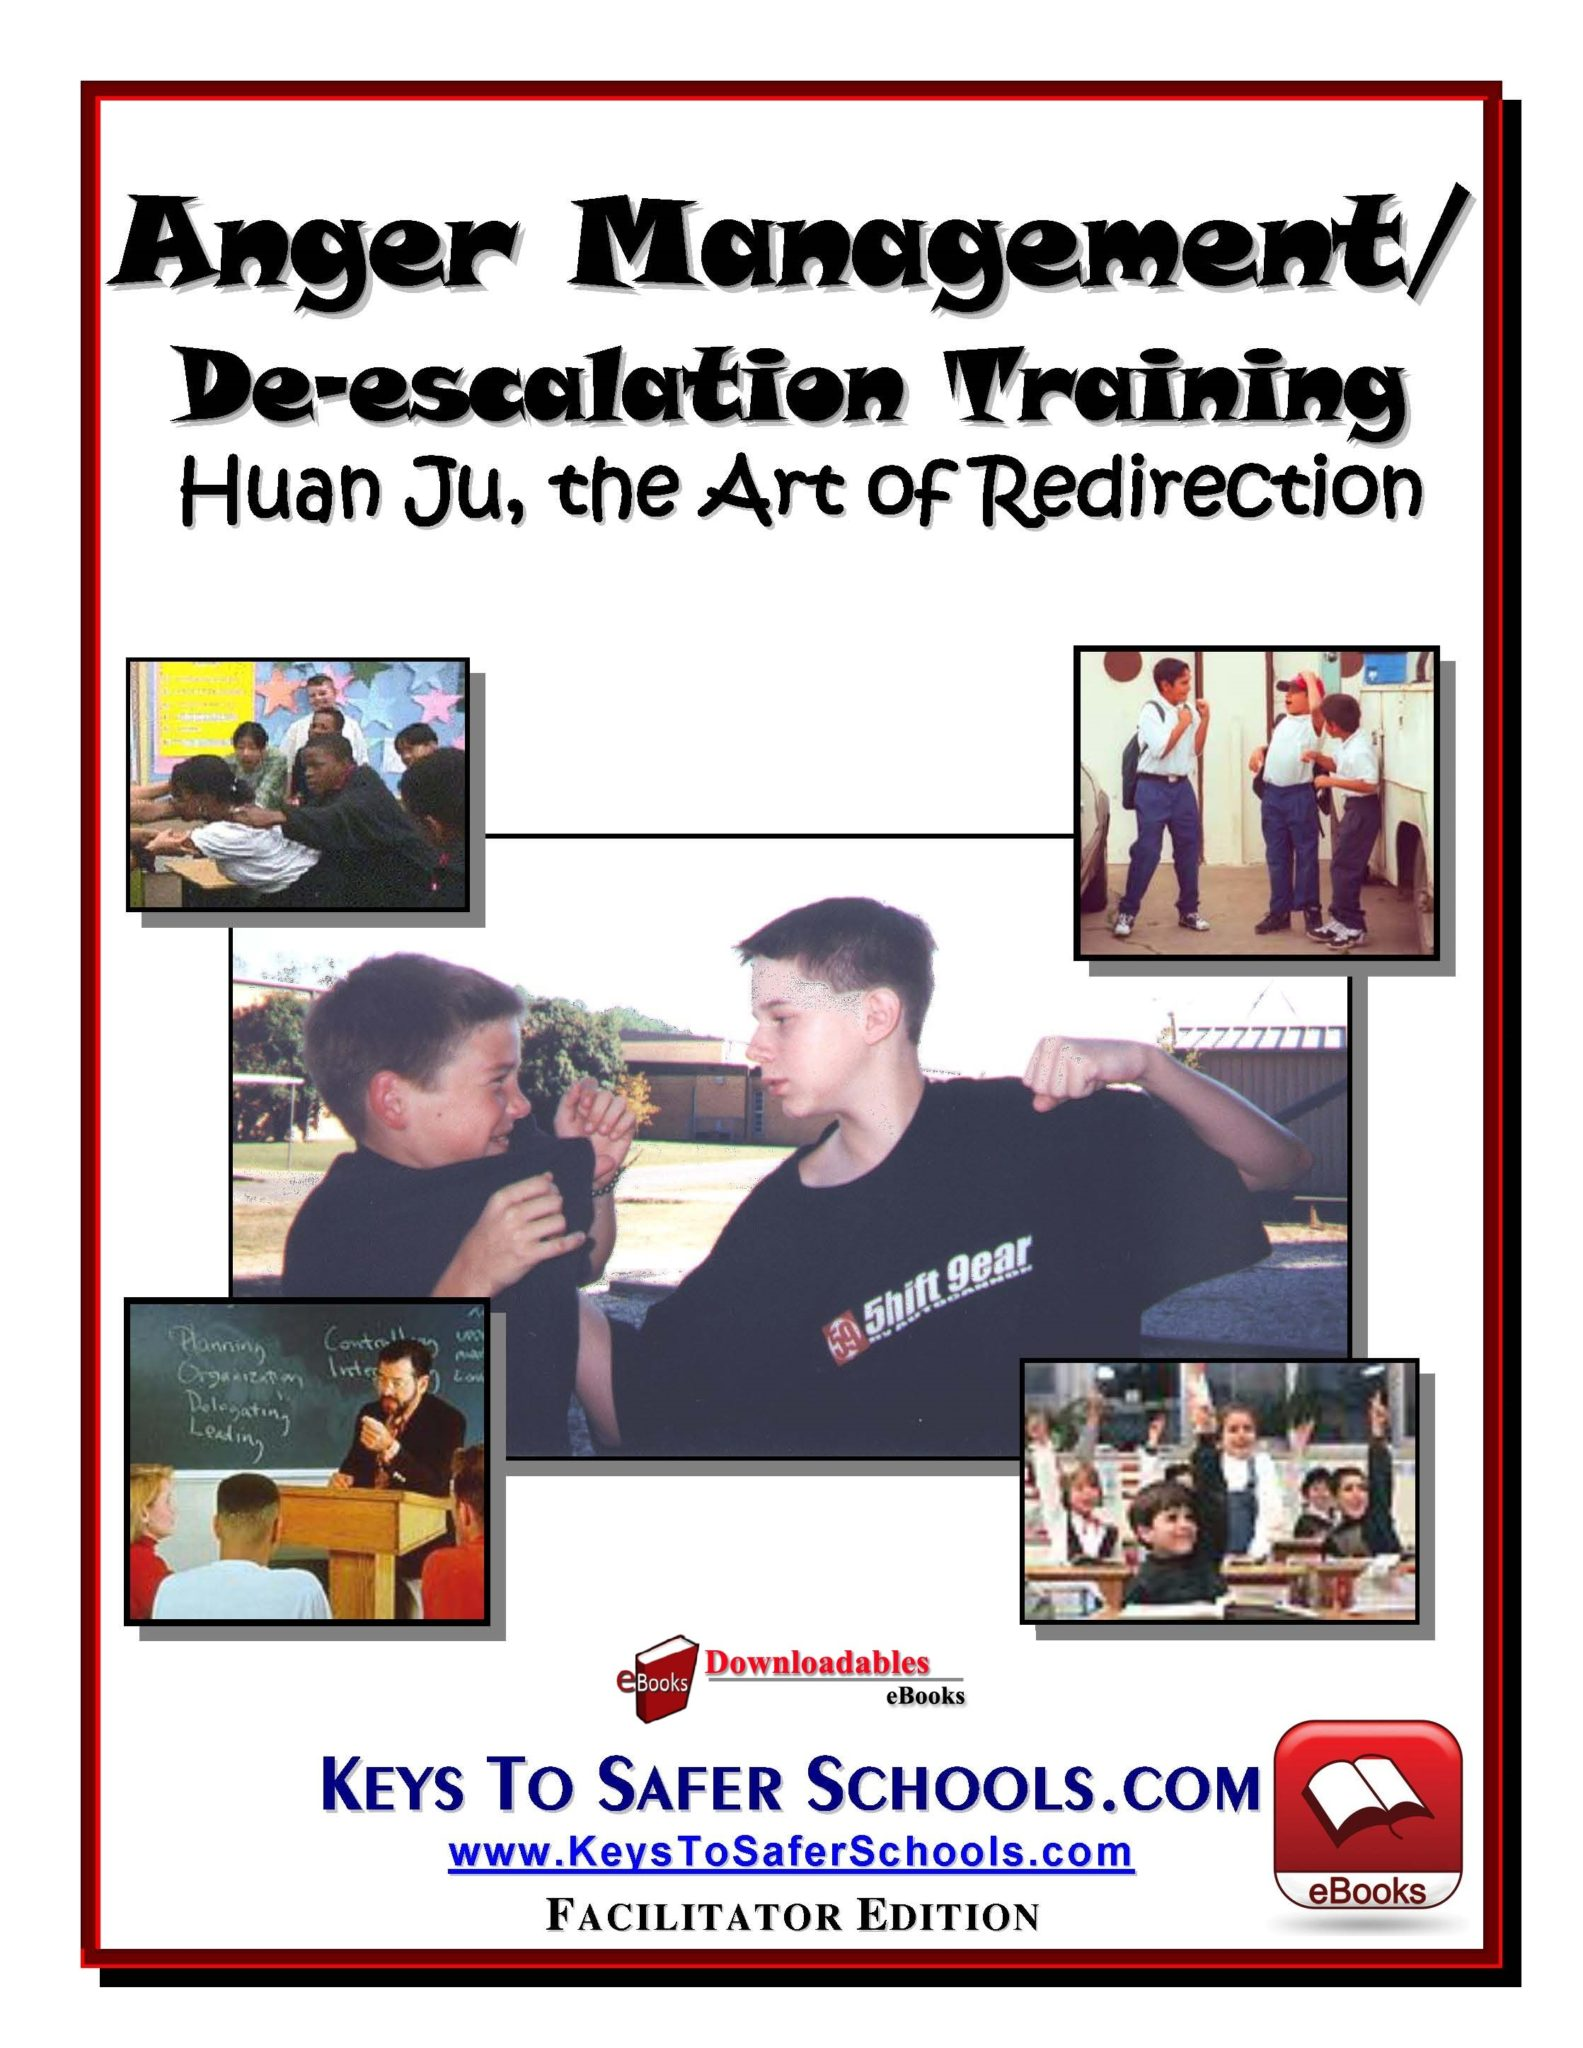 Anger Management/De-escalation Guide Downloadable eBook